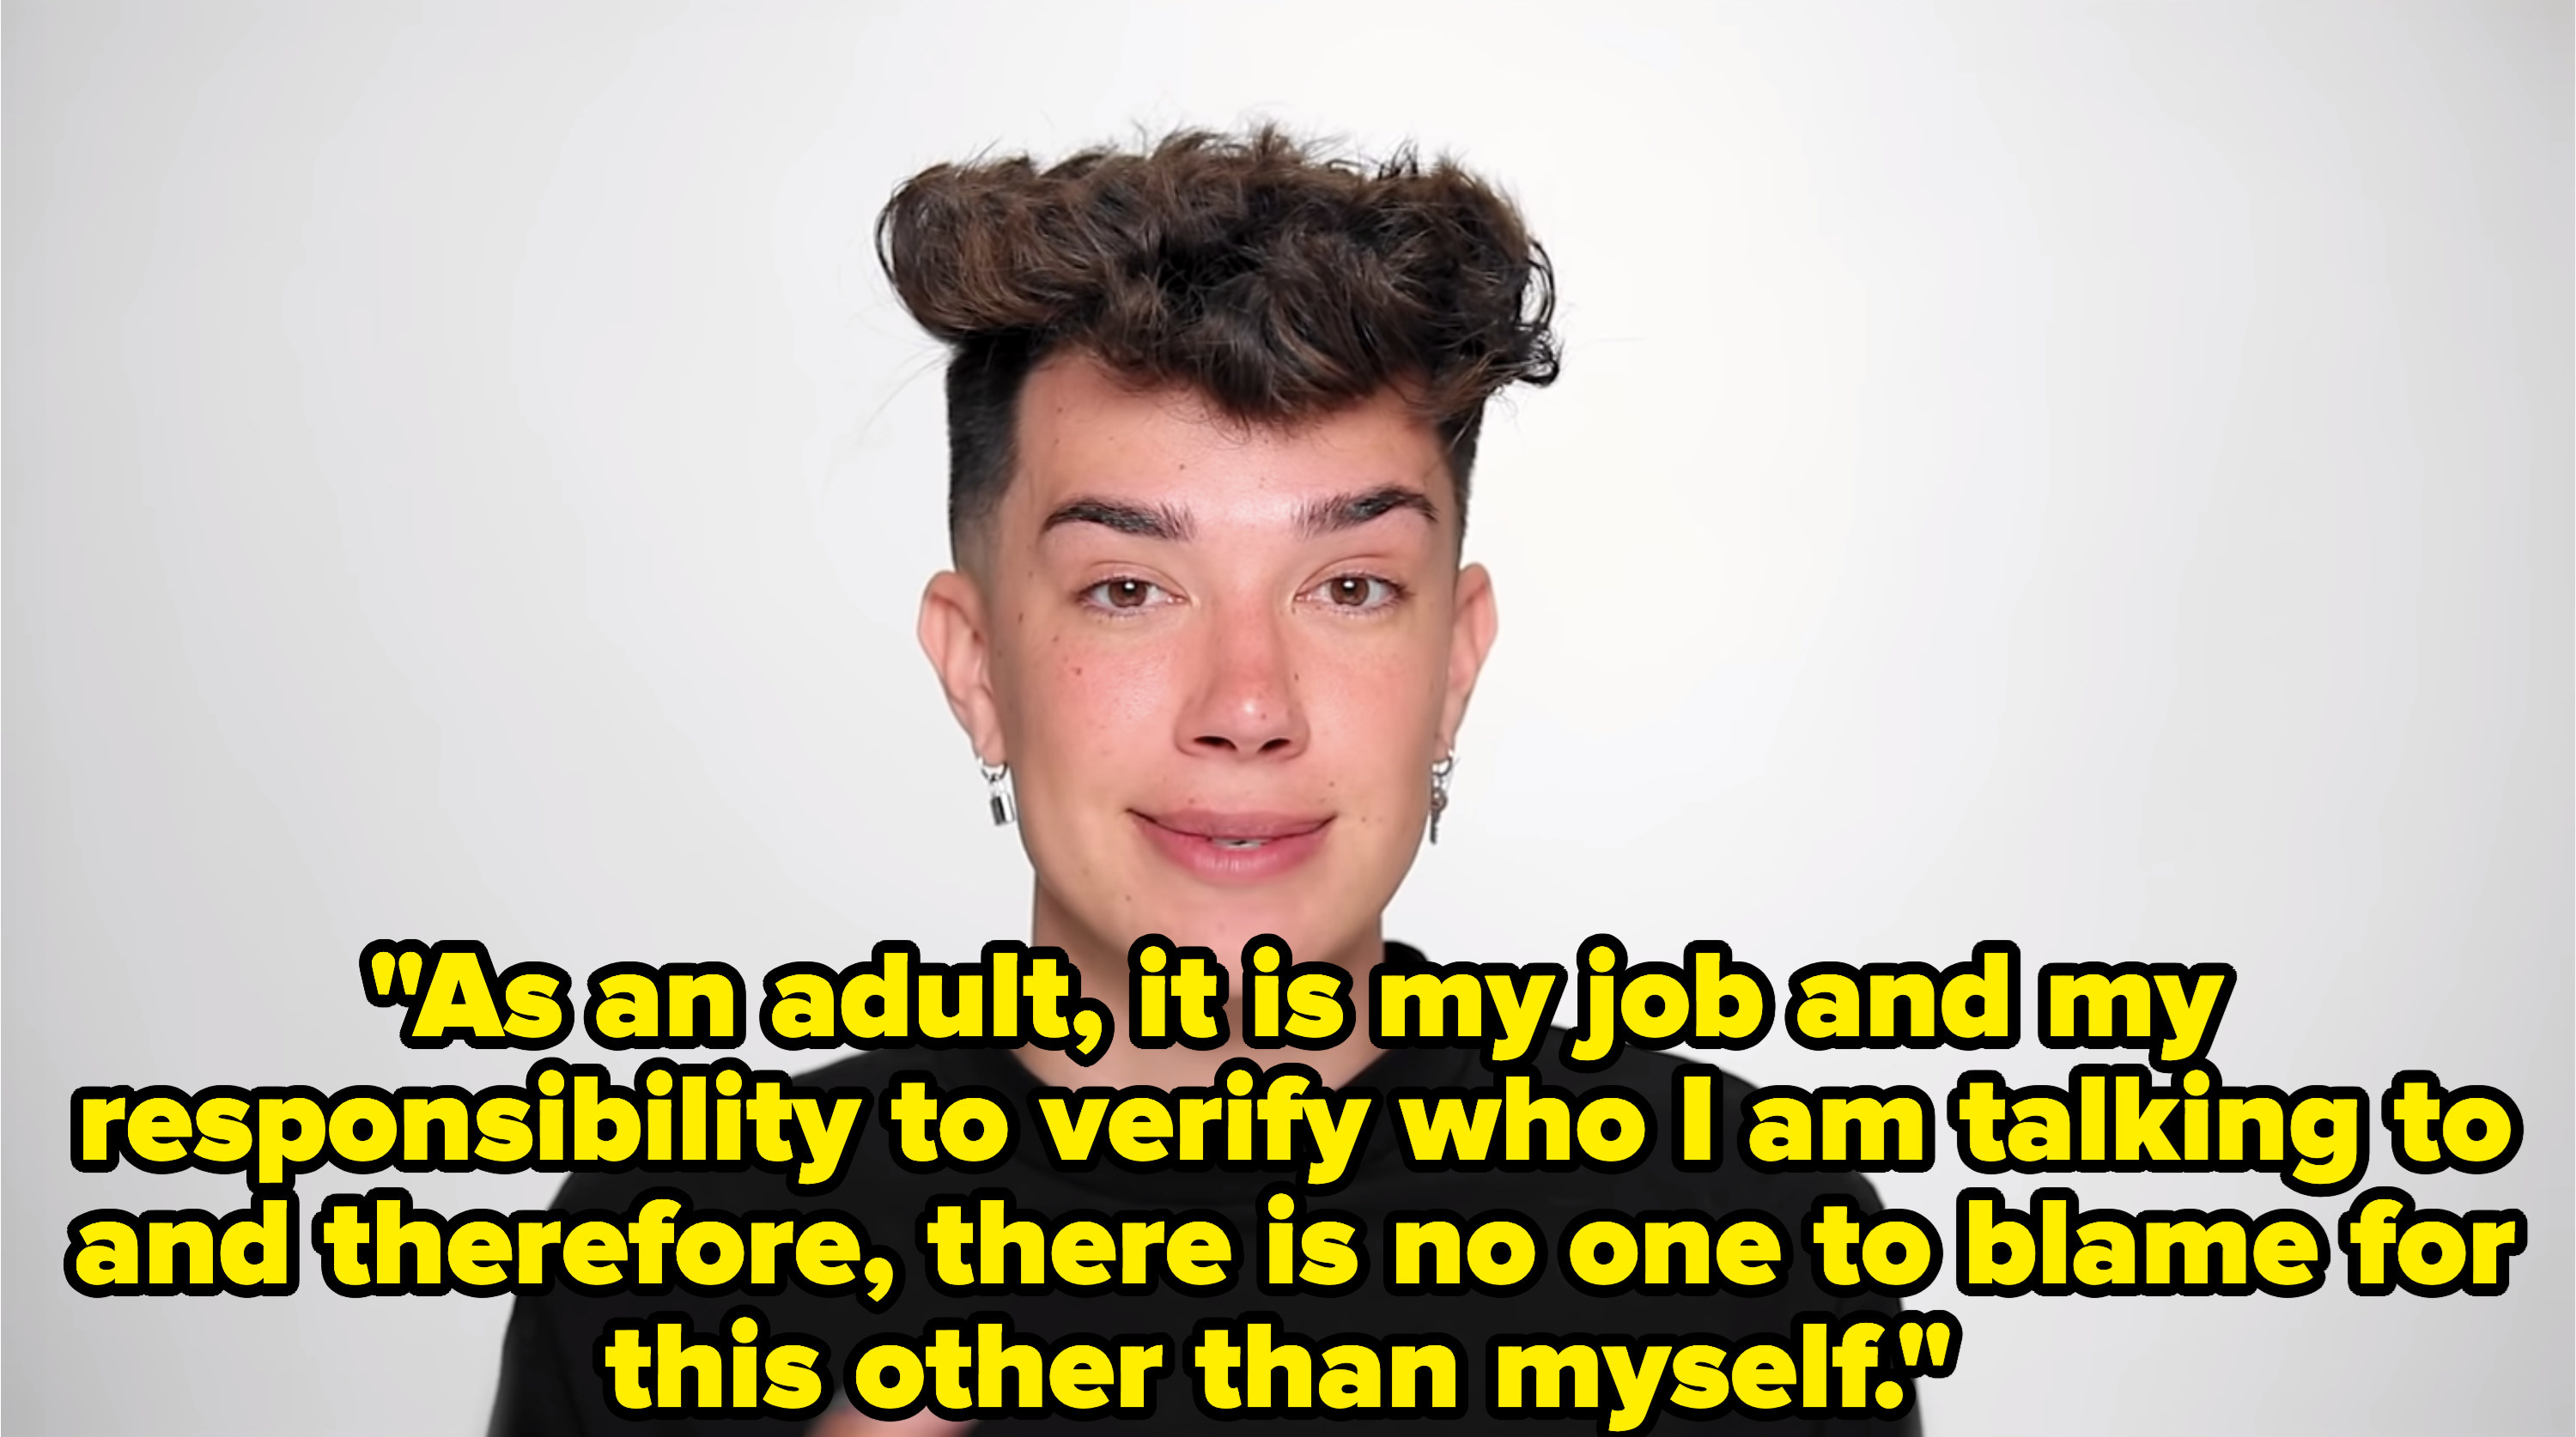 James Charles apologizing in his latest video